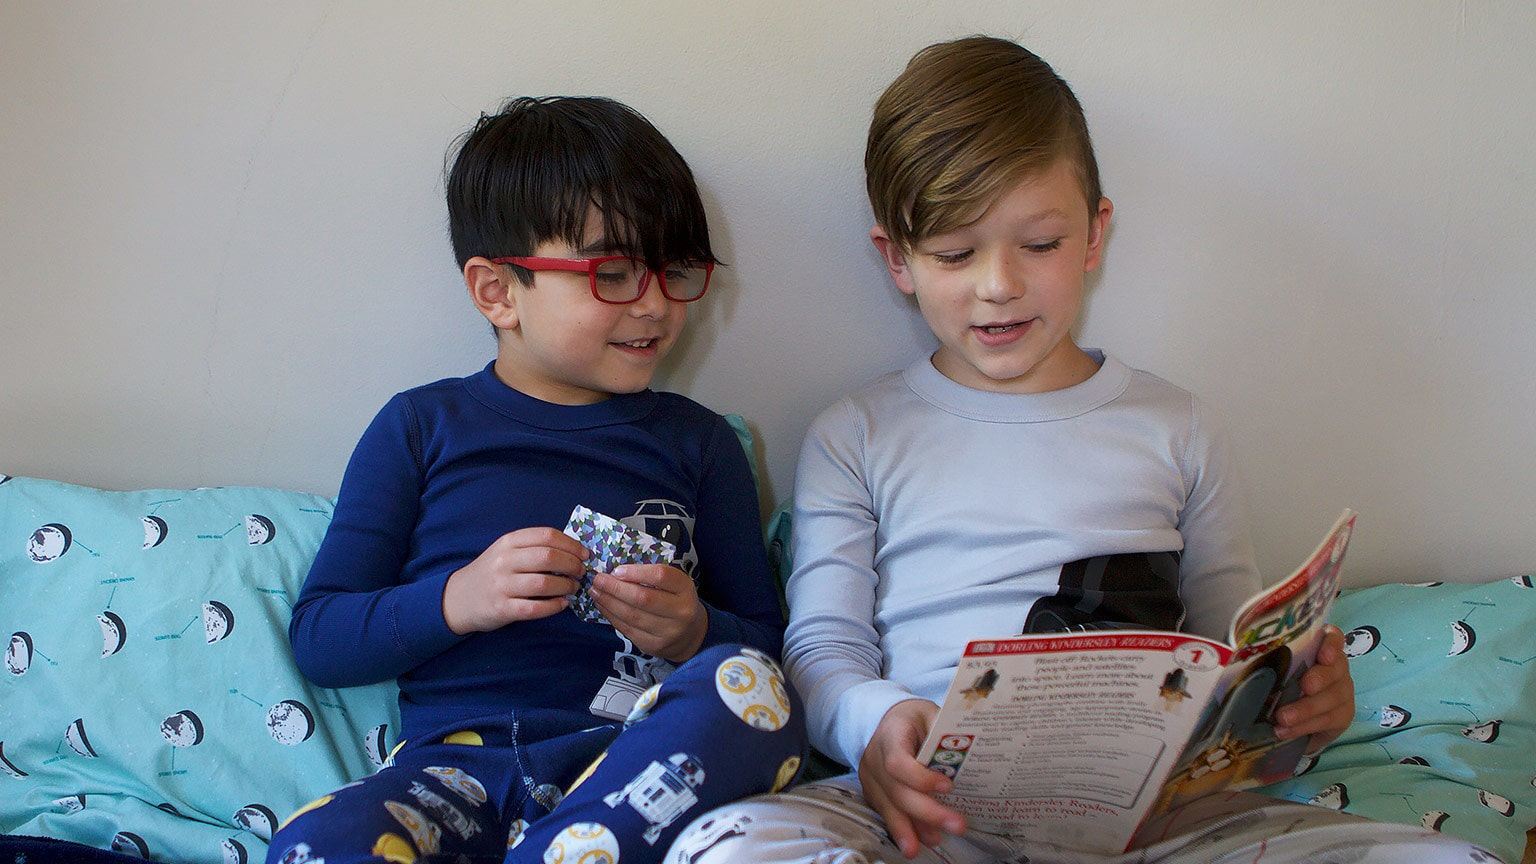 Cozy Up with the Star Wars Block Book and Matching PJs